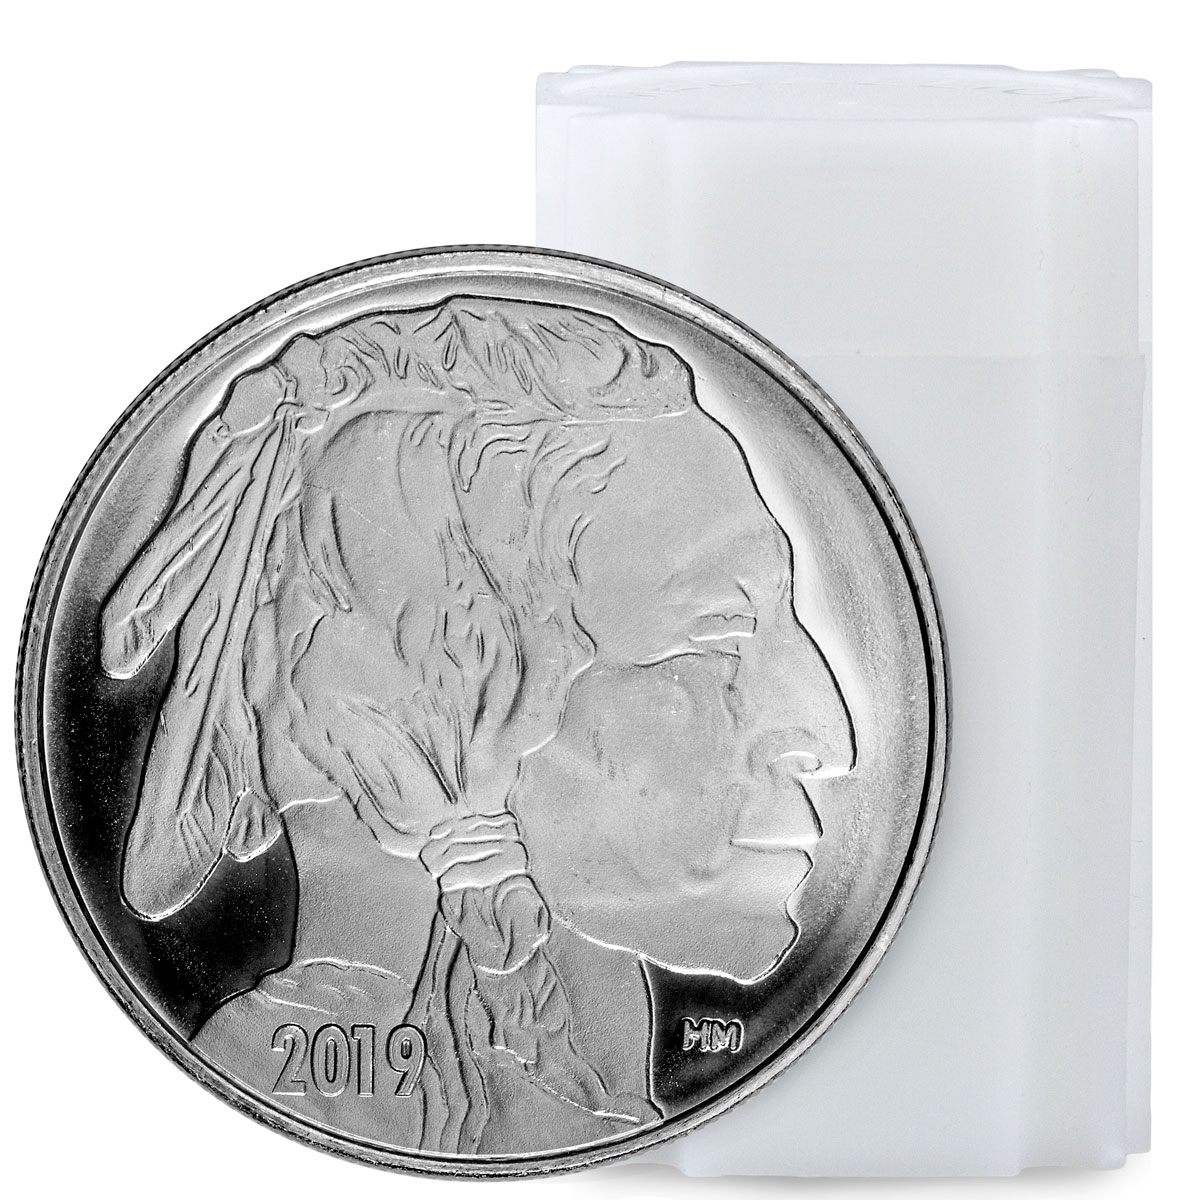 Roll of 20 - 2019 Highland Mint Buffalo Nickel Design Silver Round GEM BU